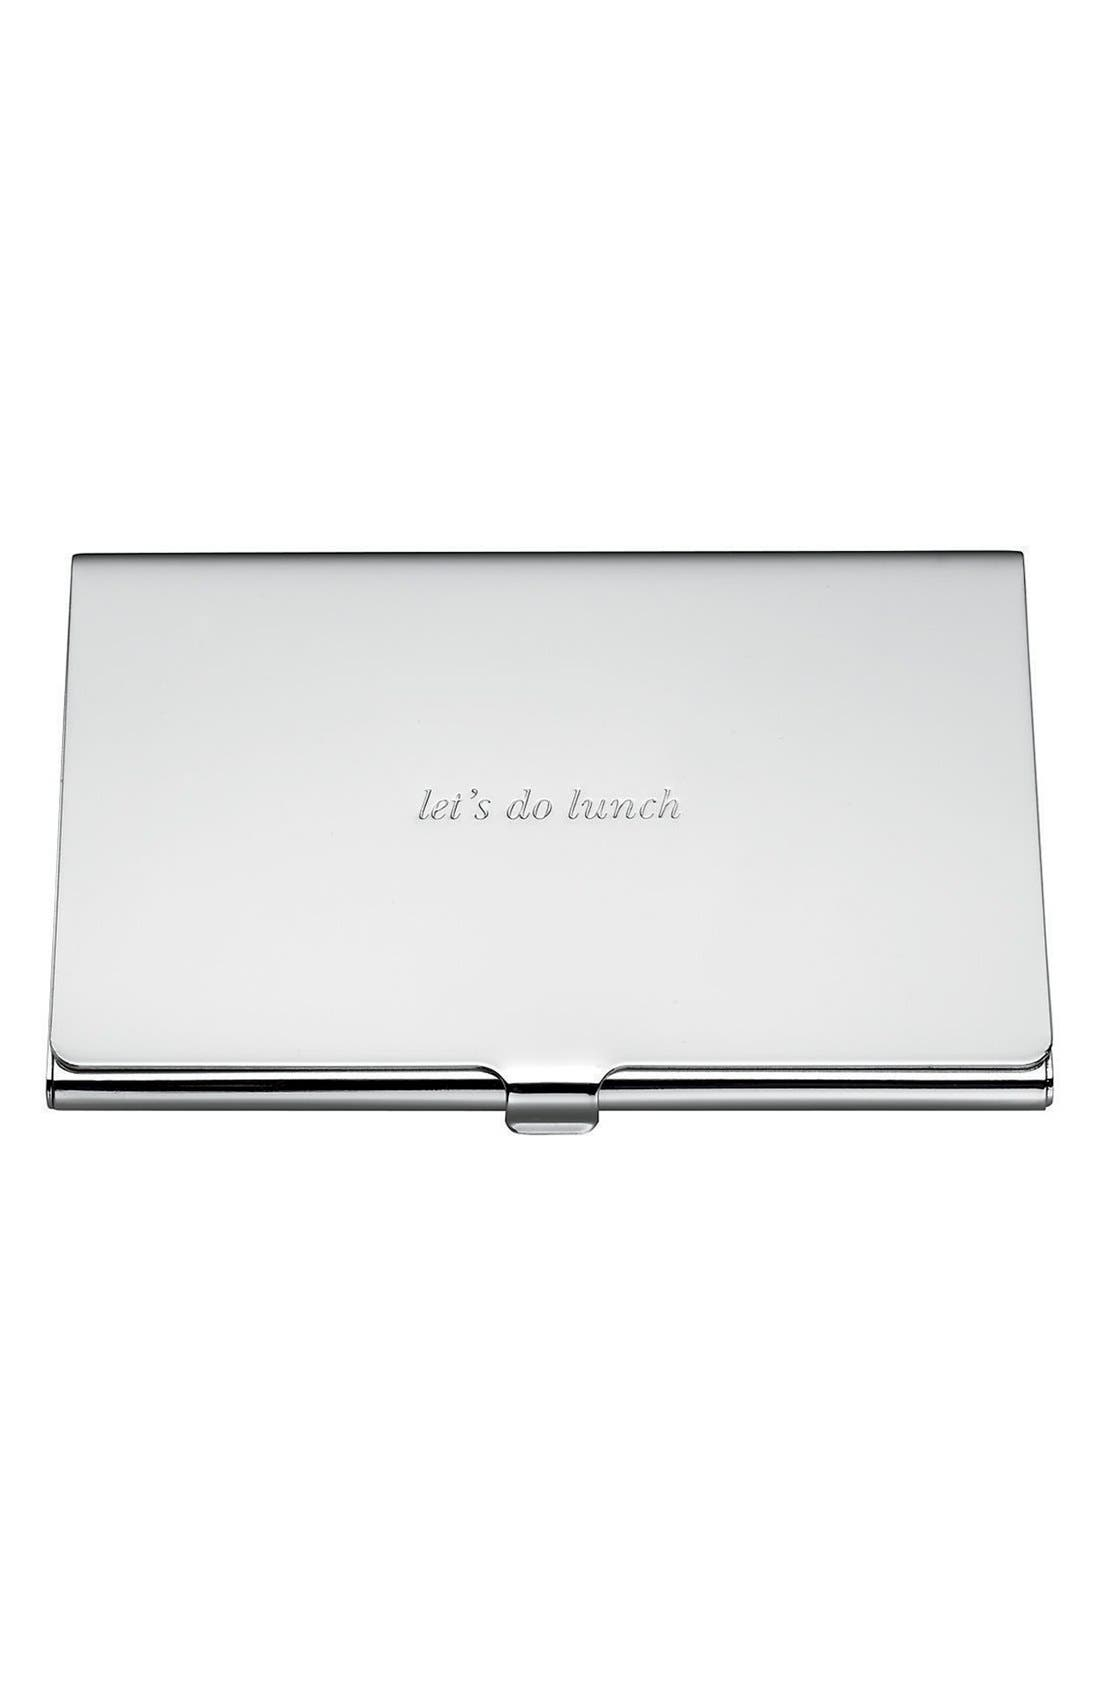 Alternate Image 1 Selected - kate spade new york let's do lunch business card holder